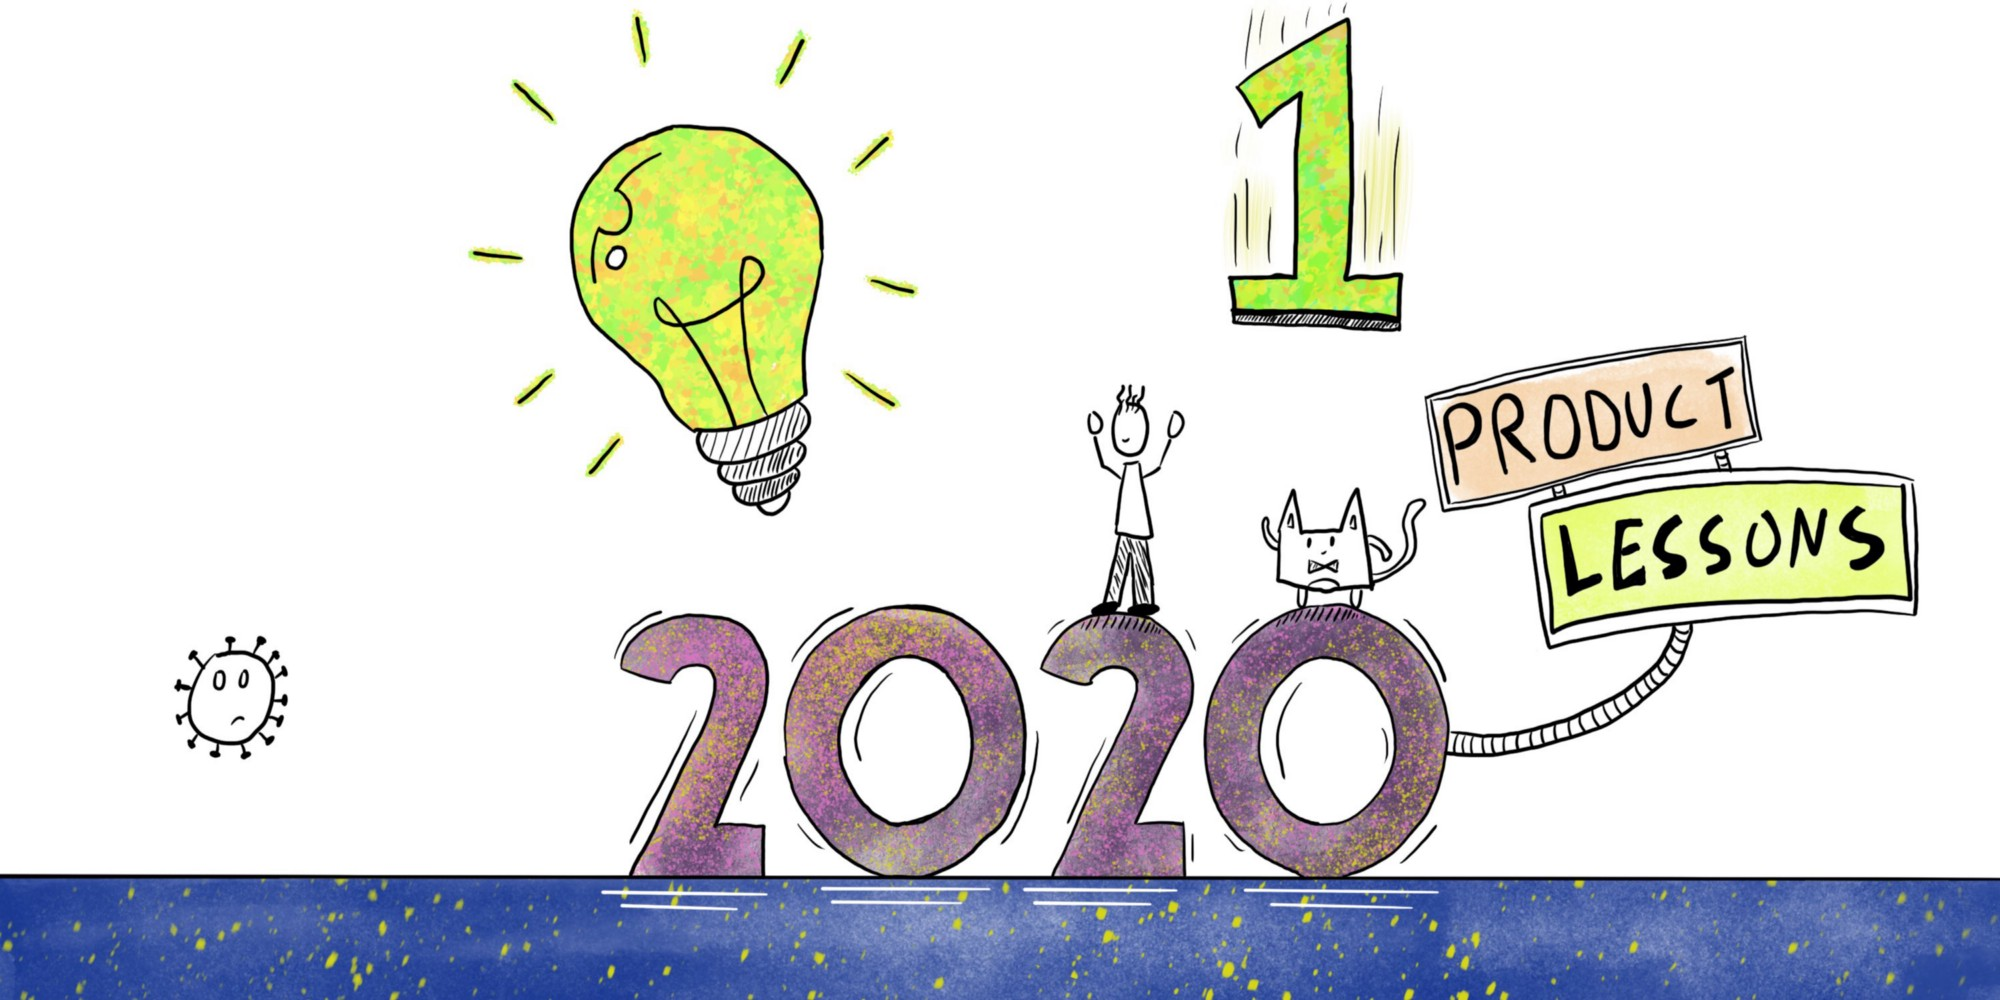 Product lessons from 2020